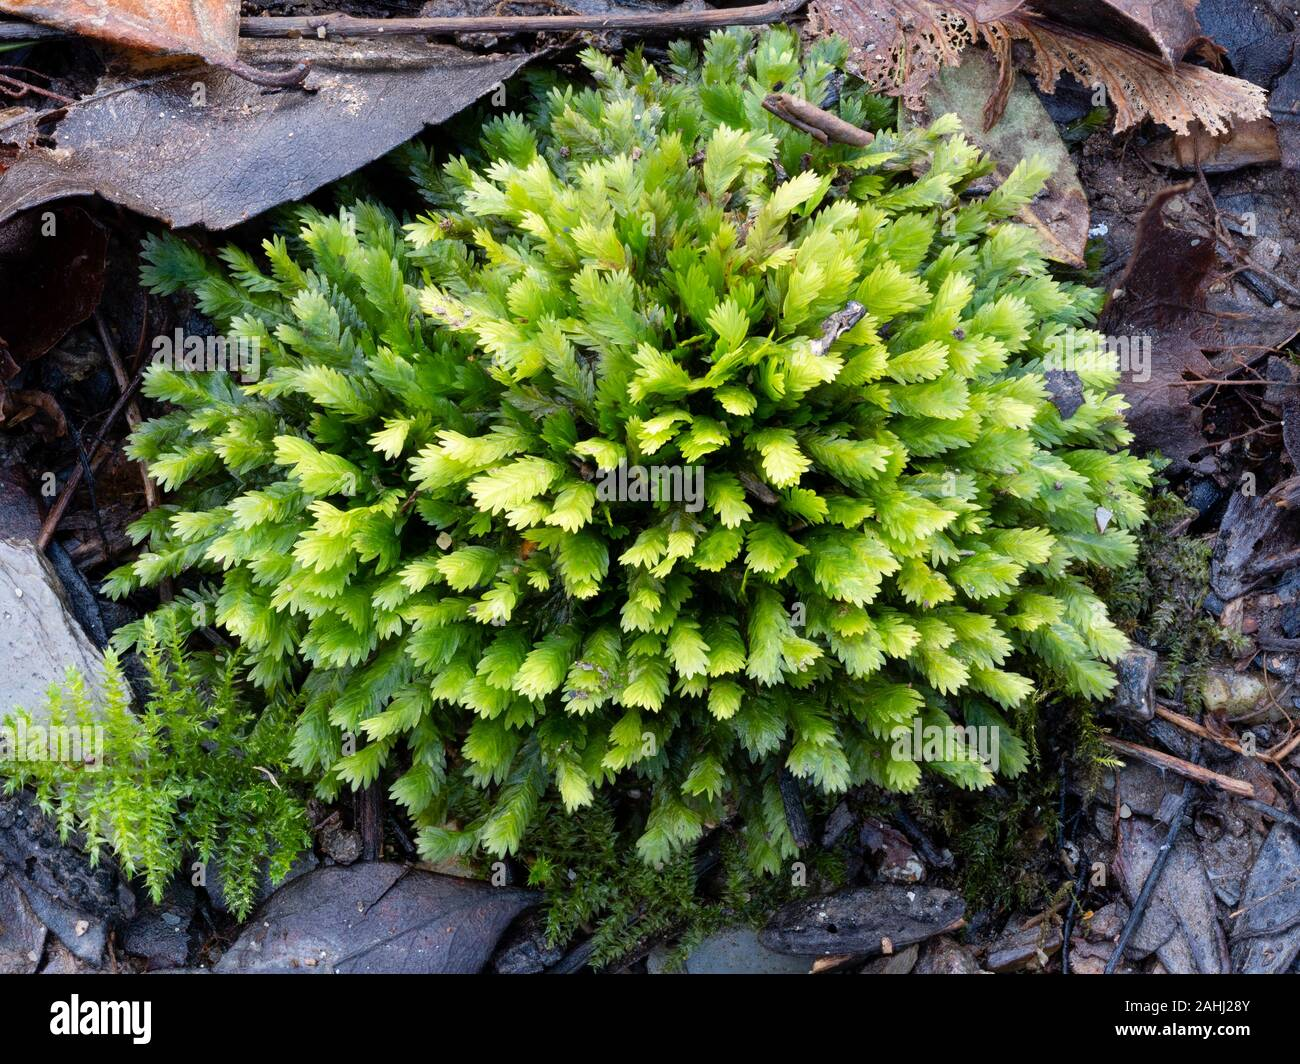 compact-mounded-cushion-of-the-common-pocket-moss-fissidens-taxifolius-var-taxifolius-in-a-uk-woodland-2AHJ28Y.jpg